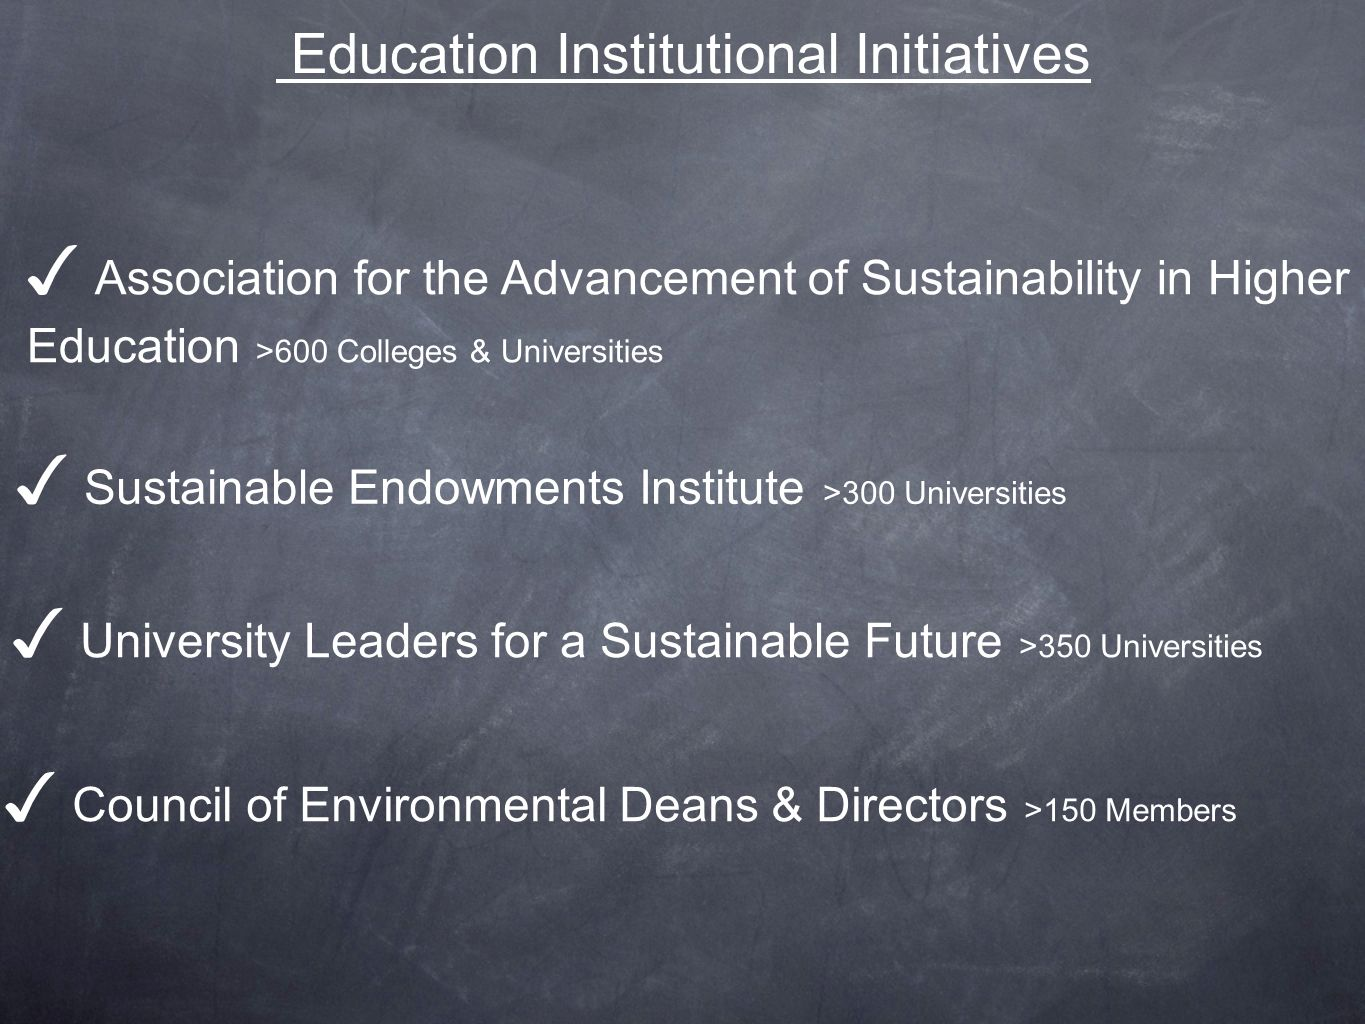 Education Institutional Initiatives Association for the Advancement of Sustainability in Higher Education >600 Colleges & Universities Sustainable Endowments Institute >300 Universities University Leaders for a Sustainable Future >350 Universities Council of Environmental Deans & Directors >150 Members